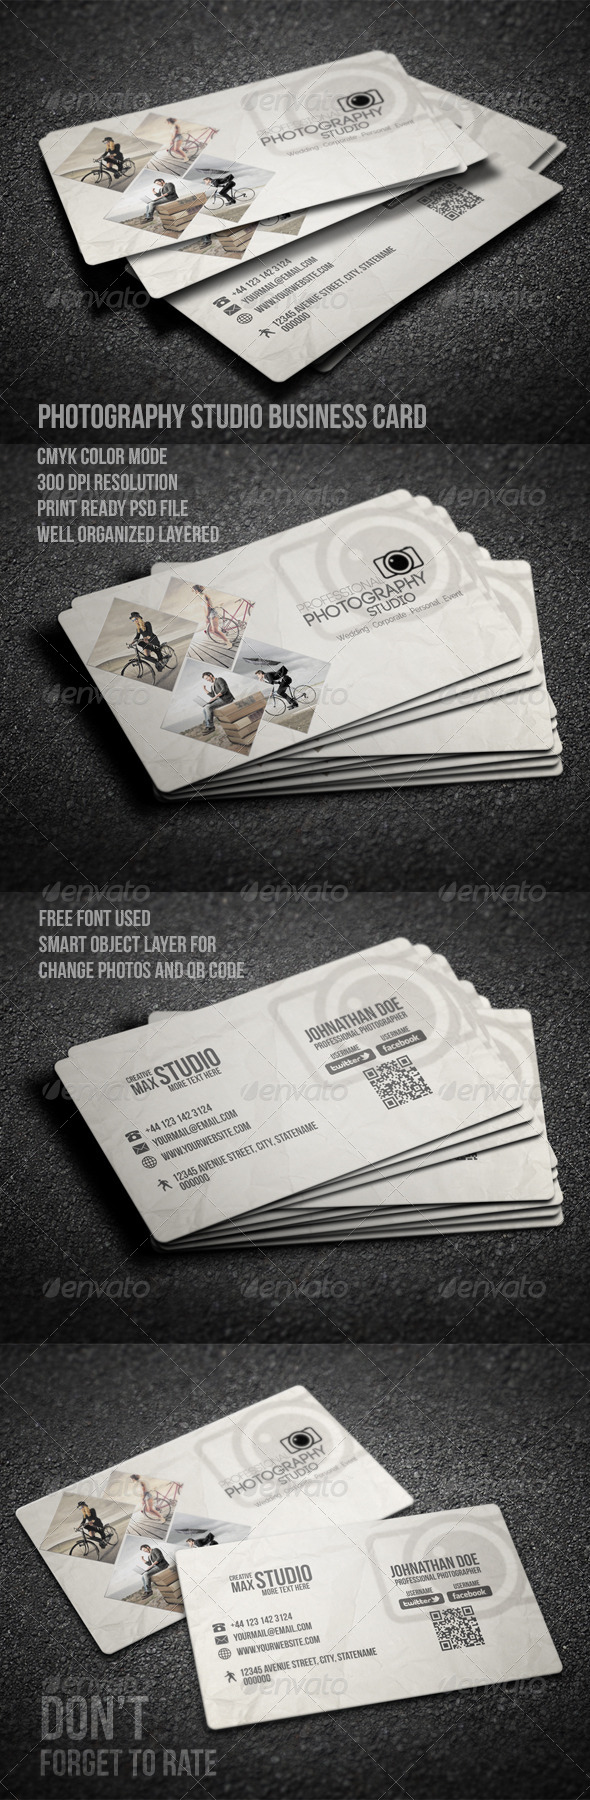 GraphicRiver Photography Studio Business Card 8054411